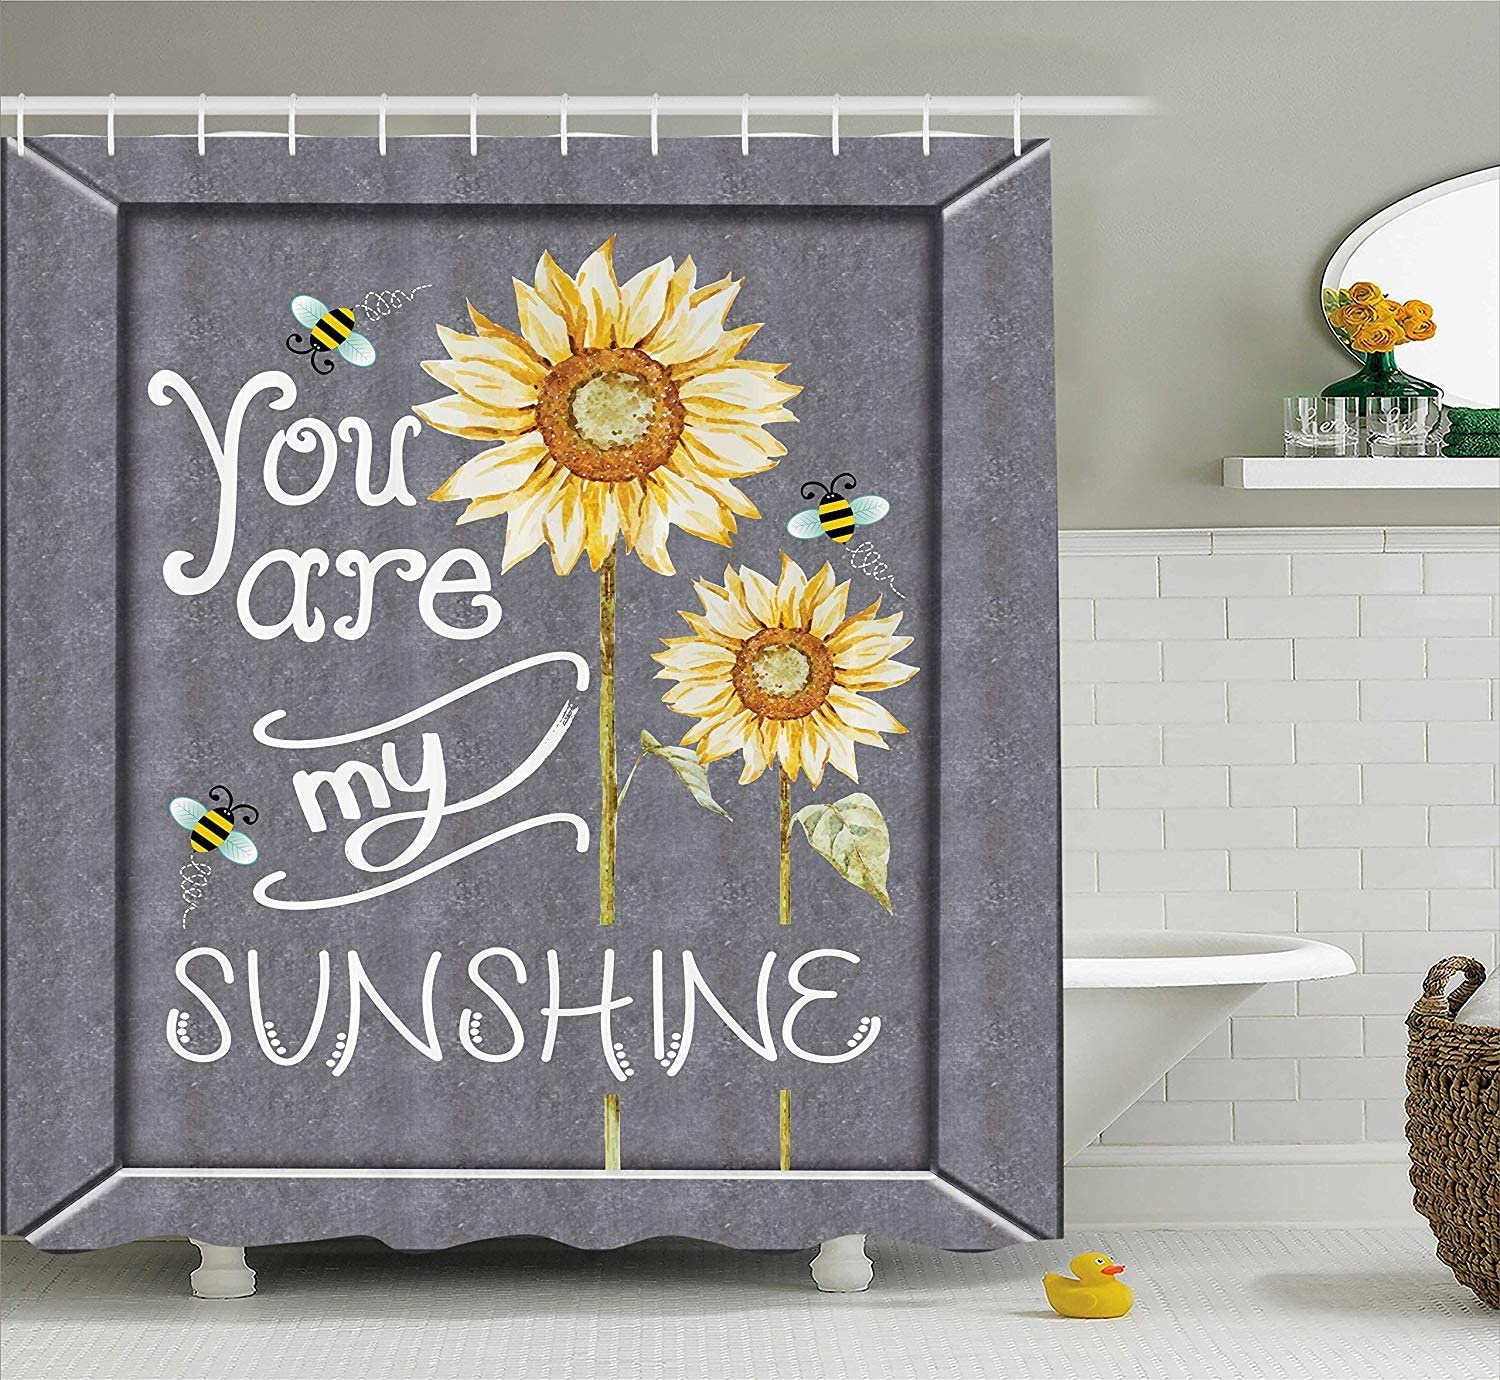 You are My Sunshine Quote on a Black Board with Bees and Sunflowers Custom  Waterproof Fabric Shower Curtain - Bathroom Decor 8x8 inch